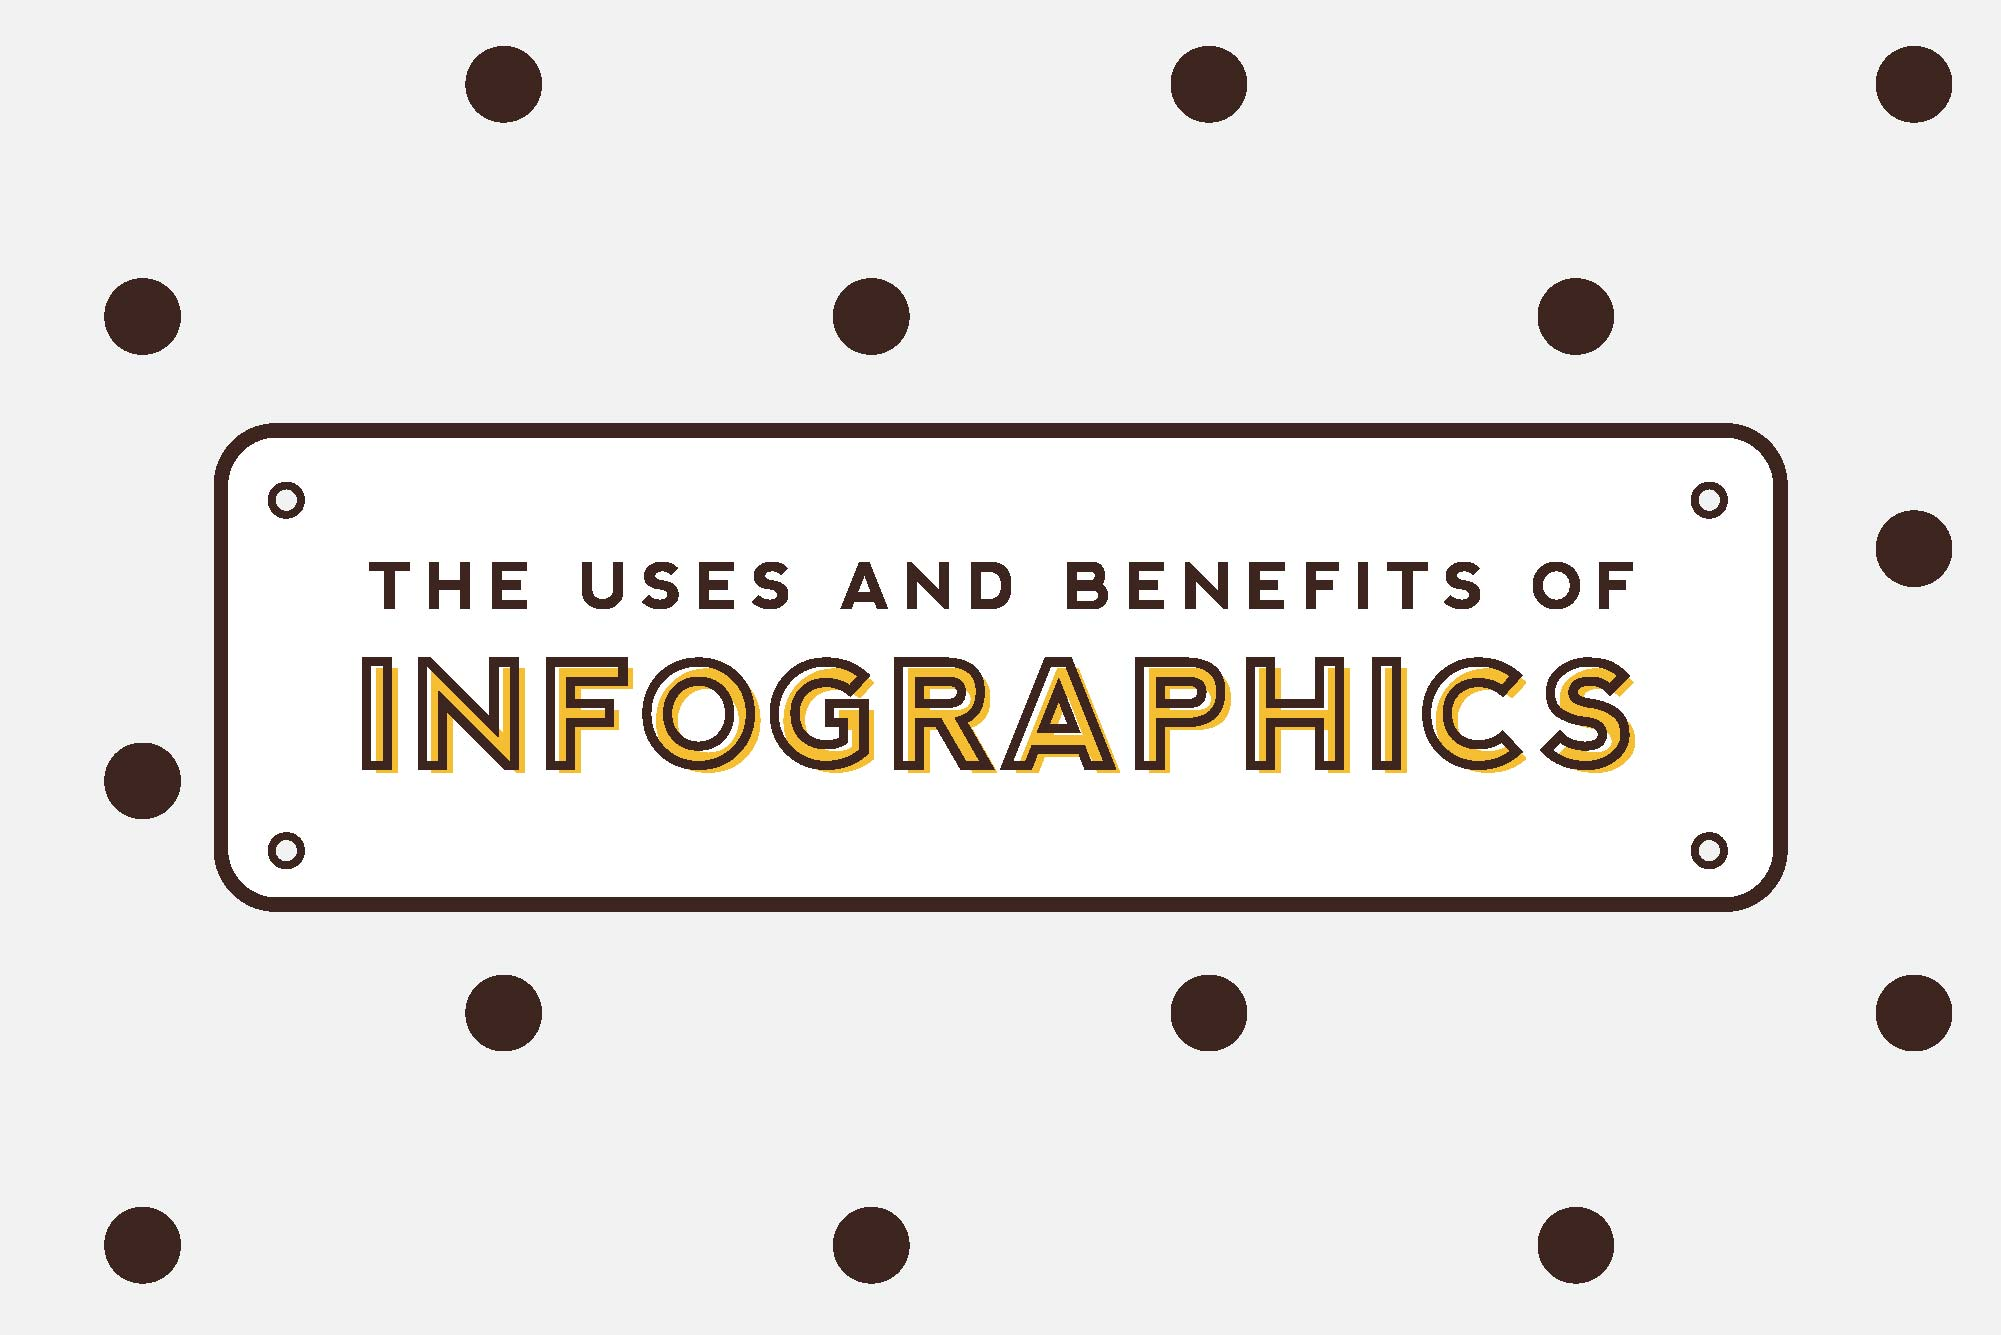 The Uses and Benefits of Infographics